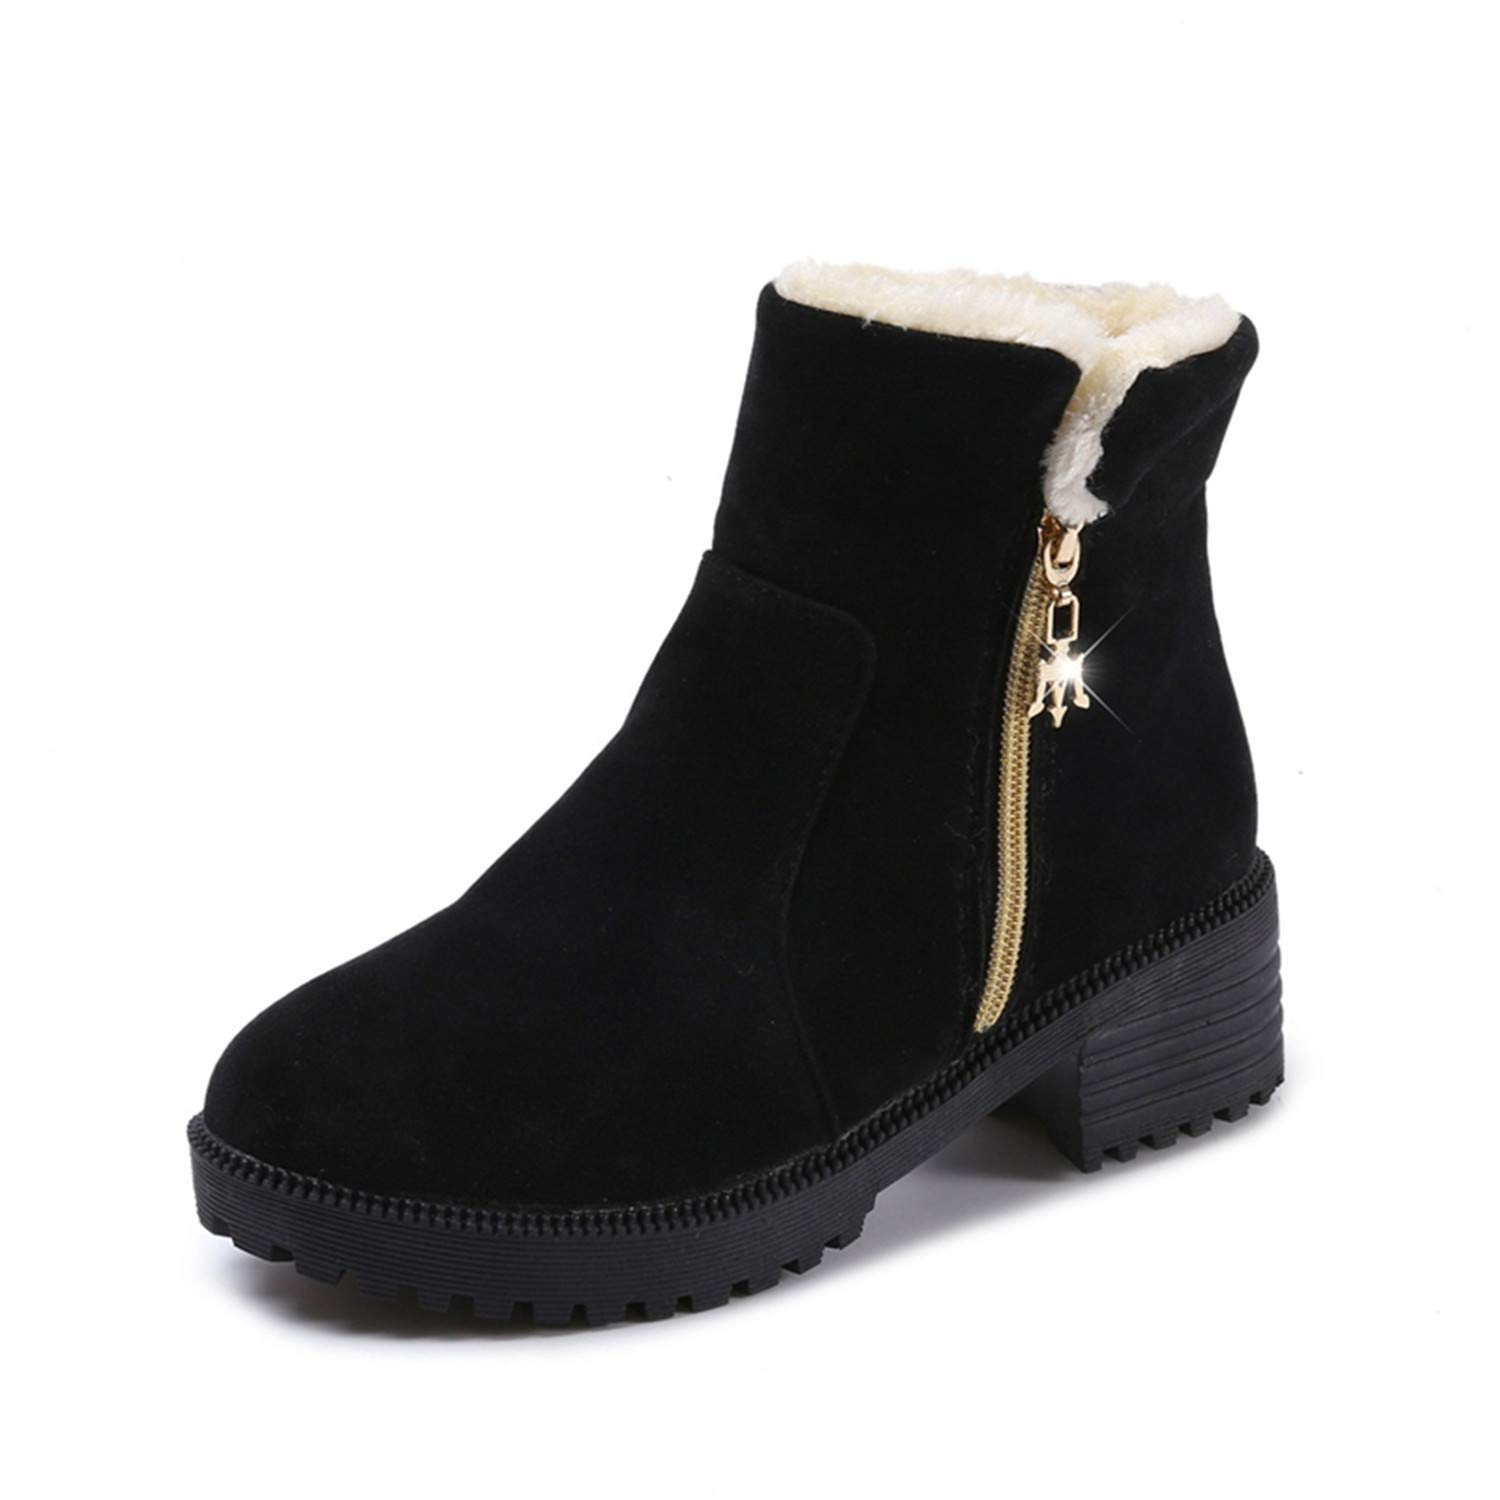 Kongsta Winter Shoes Fashion Womens Boots Leather High Heels Wedge Boots Plus Velvet Ladies Shoes Woman Non-Slip Casual Snow Boots